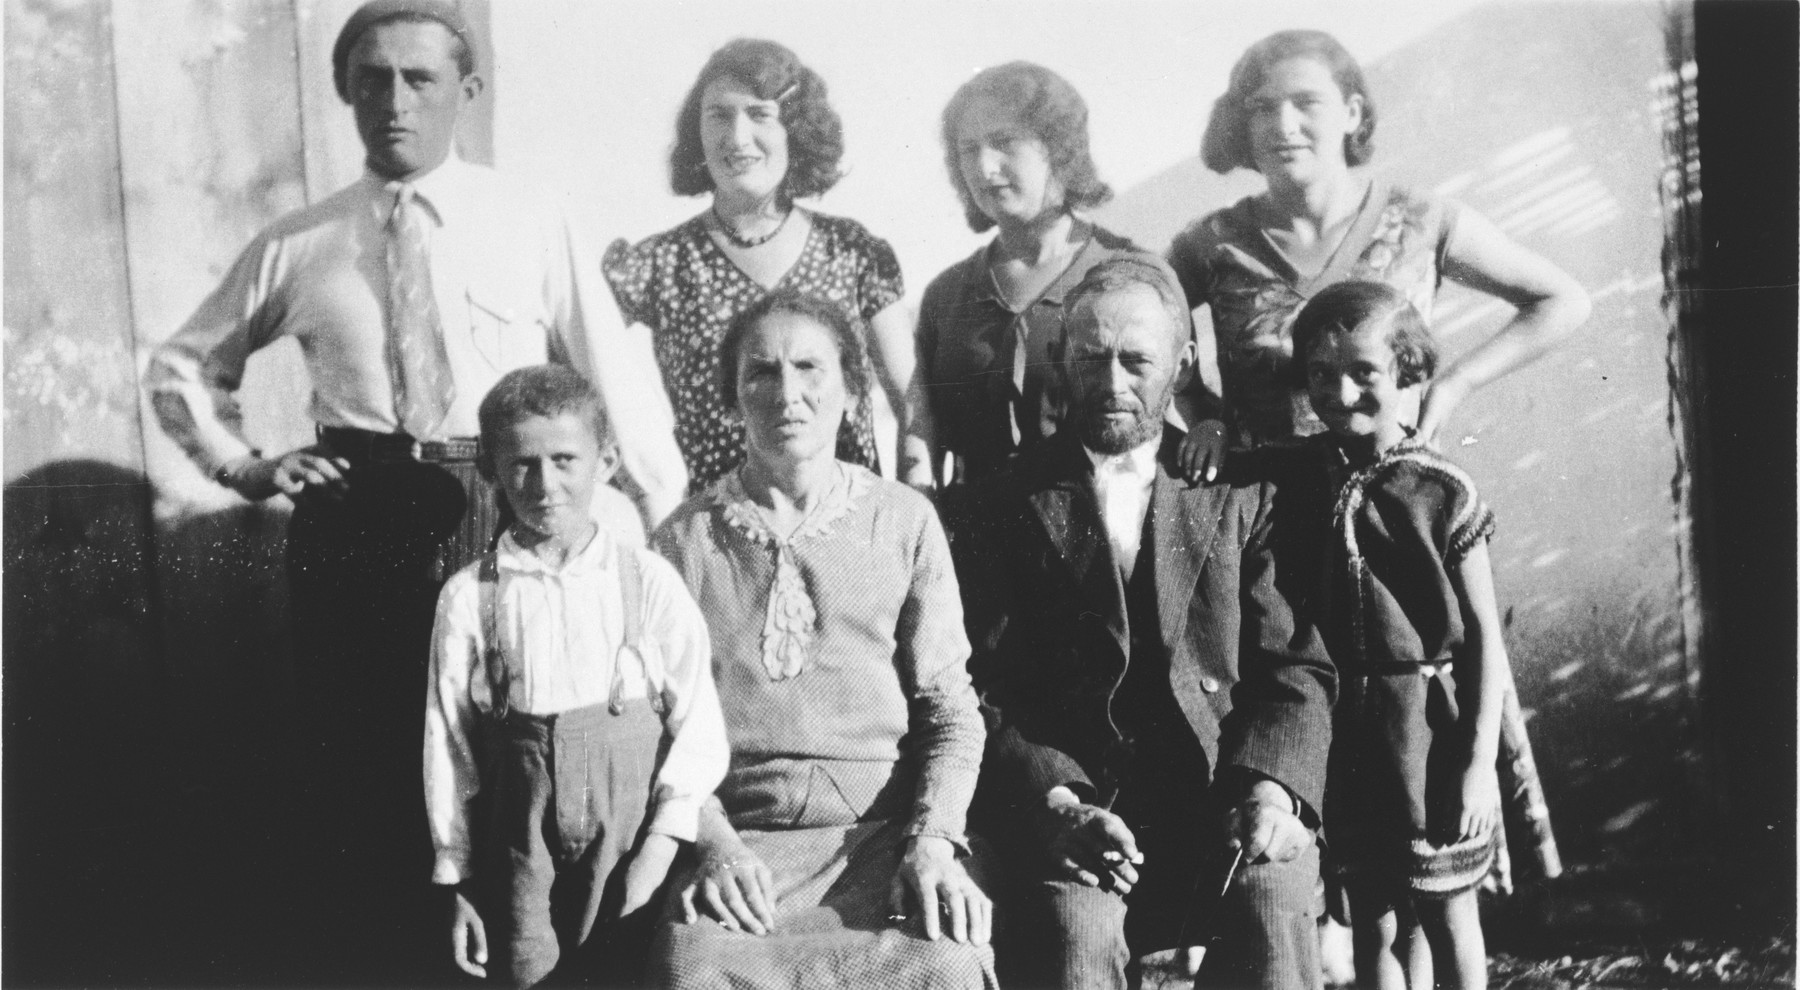 Rivka and Meshilem Frisch pose with their children outside their home in a small shtetl.  Standing from left to right are Yisroel, Fridjeh, Ruzie and Peshe.  Sitting are Dudie, Rivka, Meshilem and Mancha.  Only Fridjeh survived.